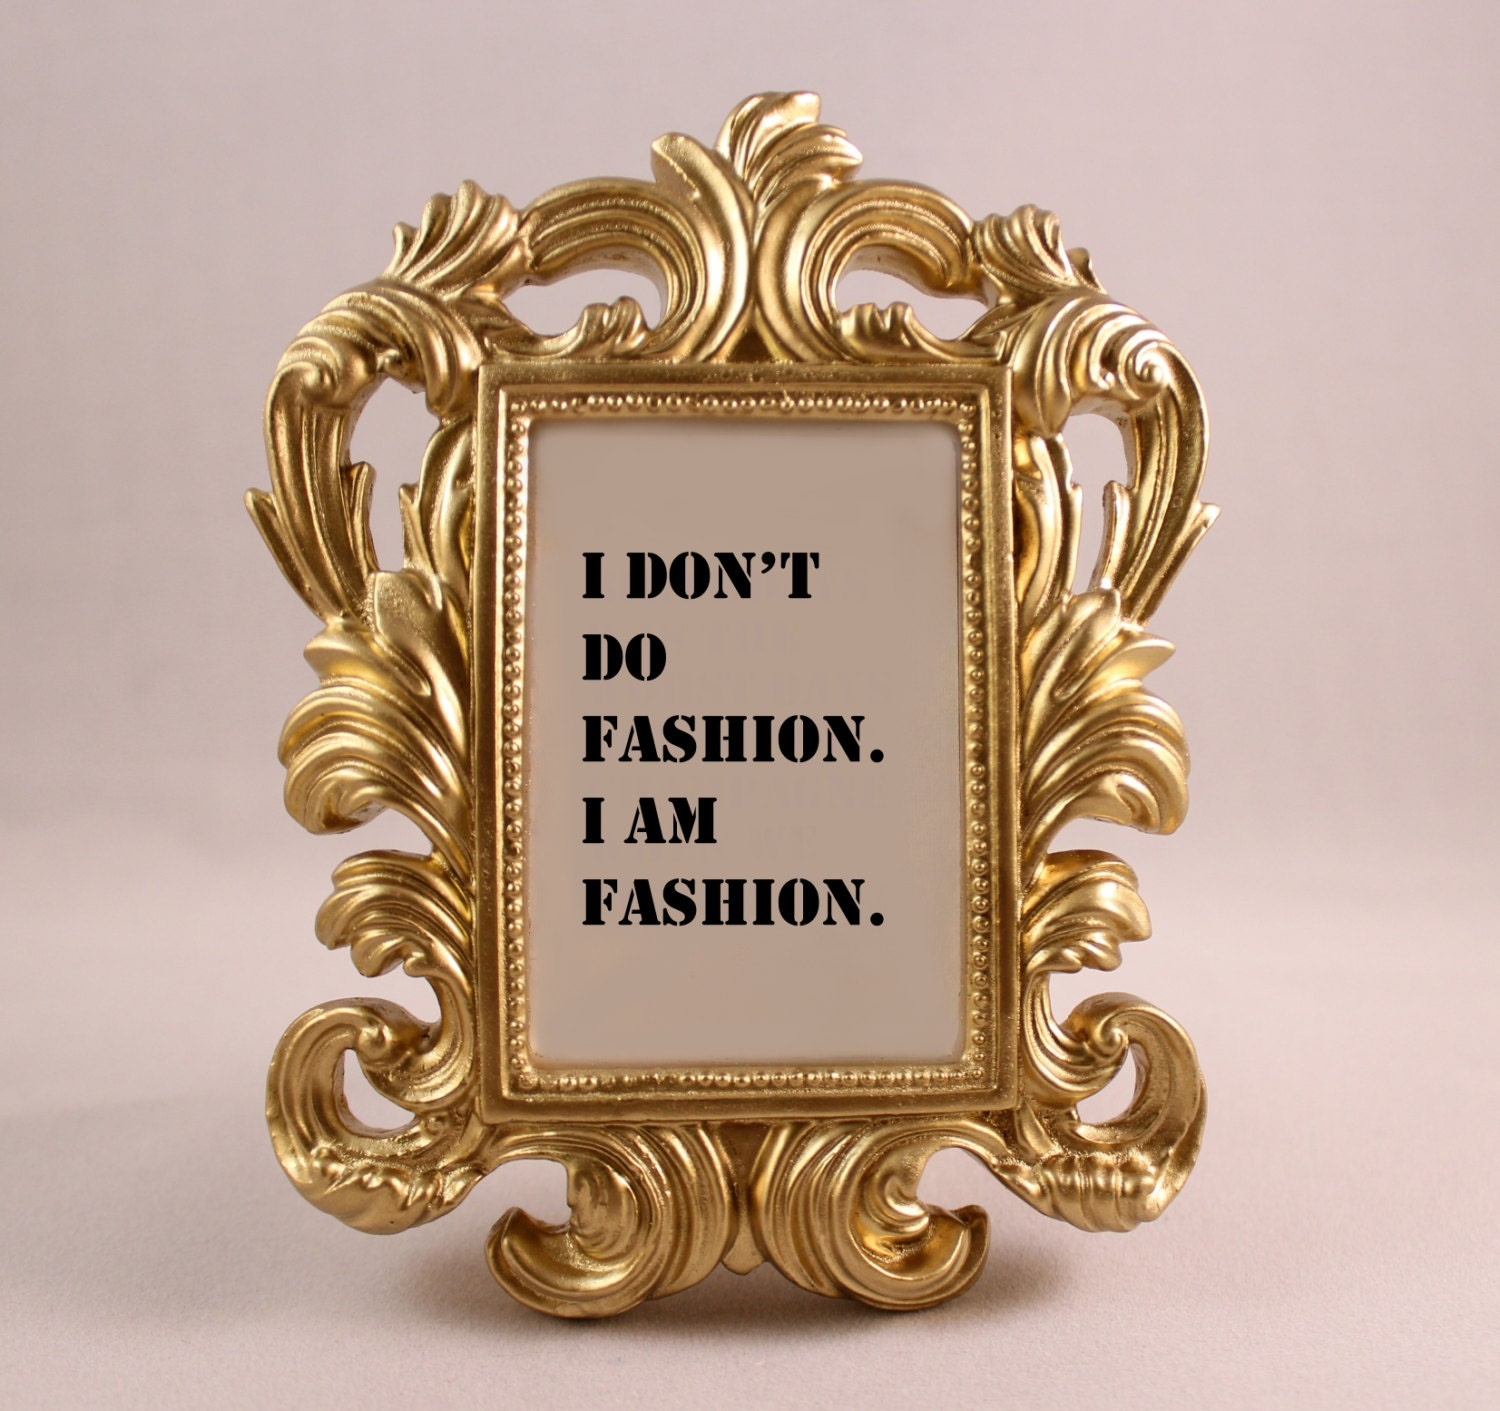 Custom framed quote coco chanel fashion quote i am fashion zoom jeuxipadfo Image collections